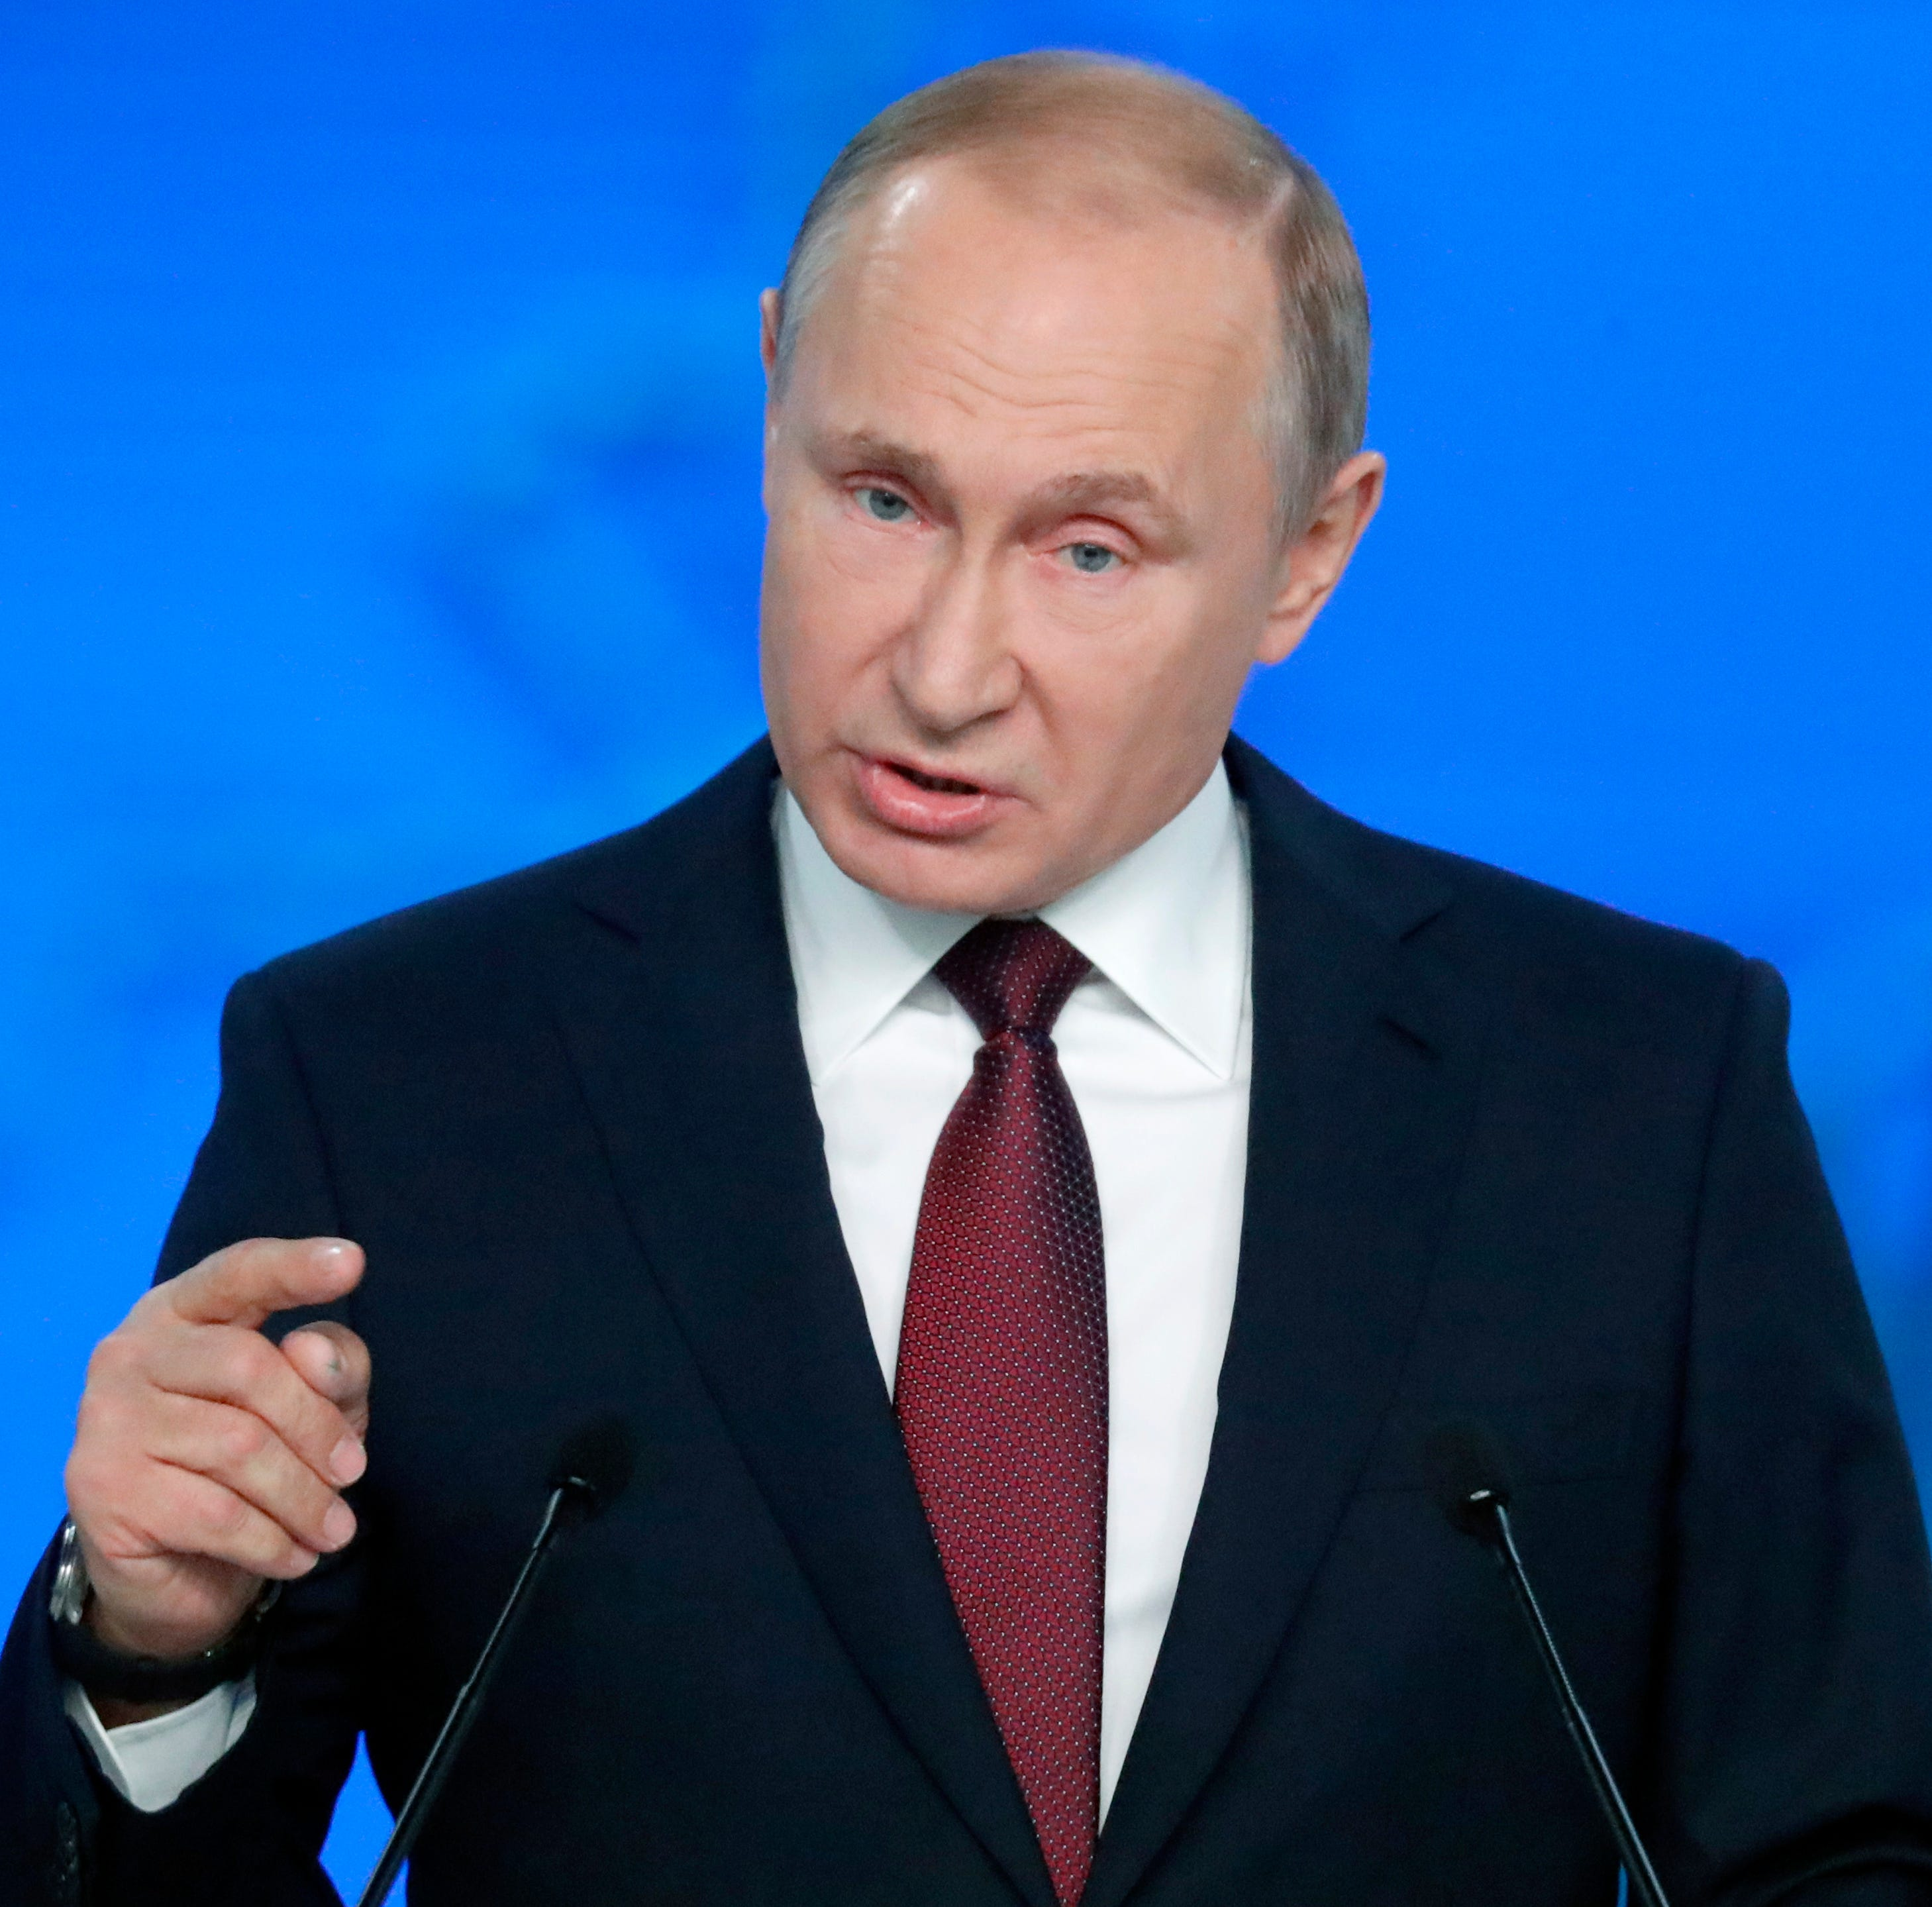 Russian President Vladimir Putin delivers his annual Address to the Federal Assembly at Gostinny Dvor in Moscow, Russia, February 20 2019.